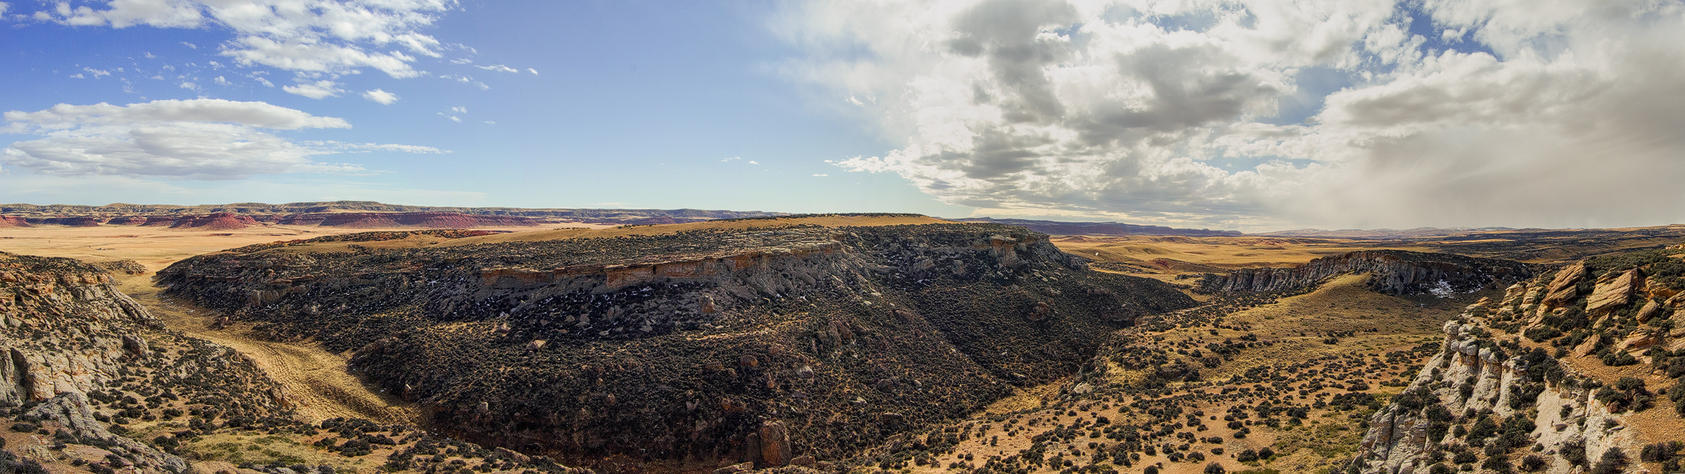 Lost Canyon Panorama by wyorev